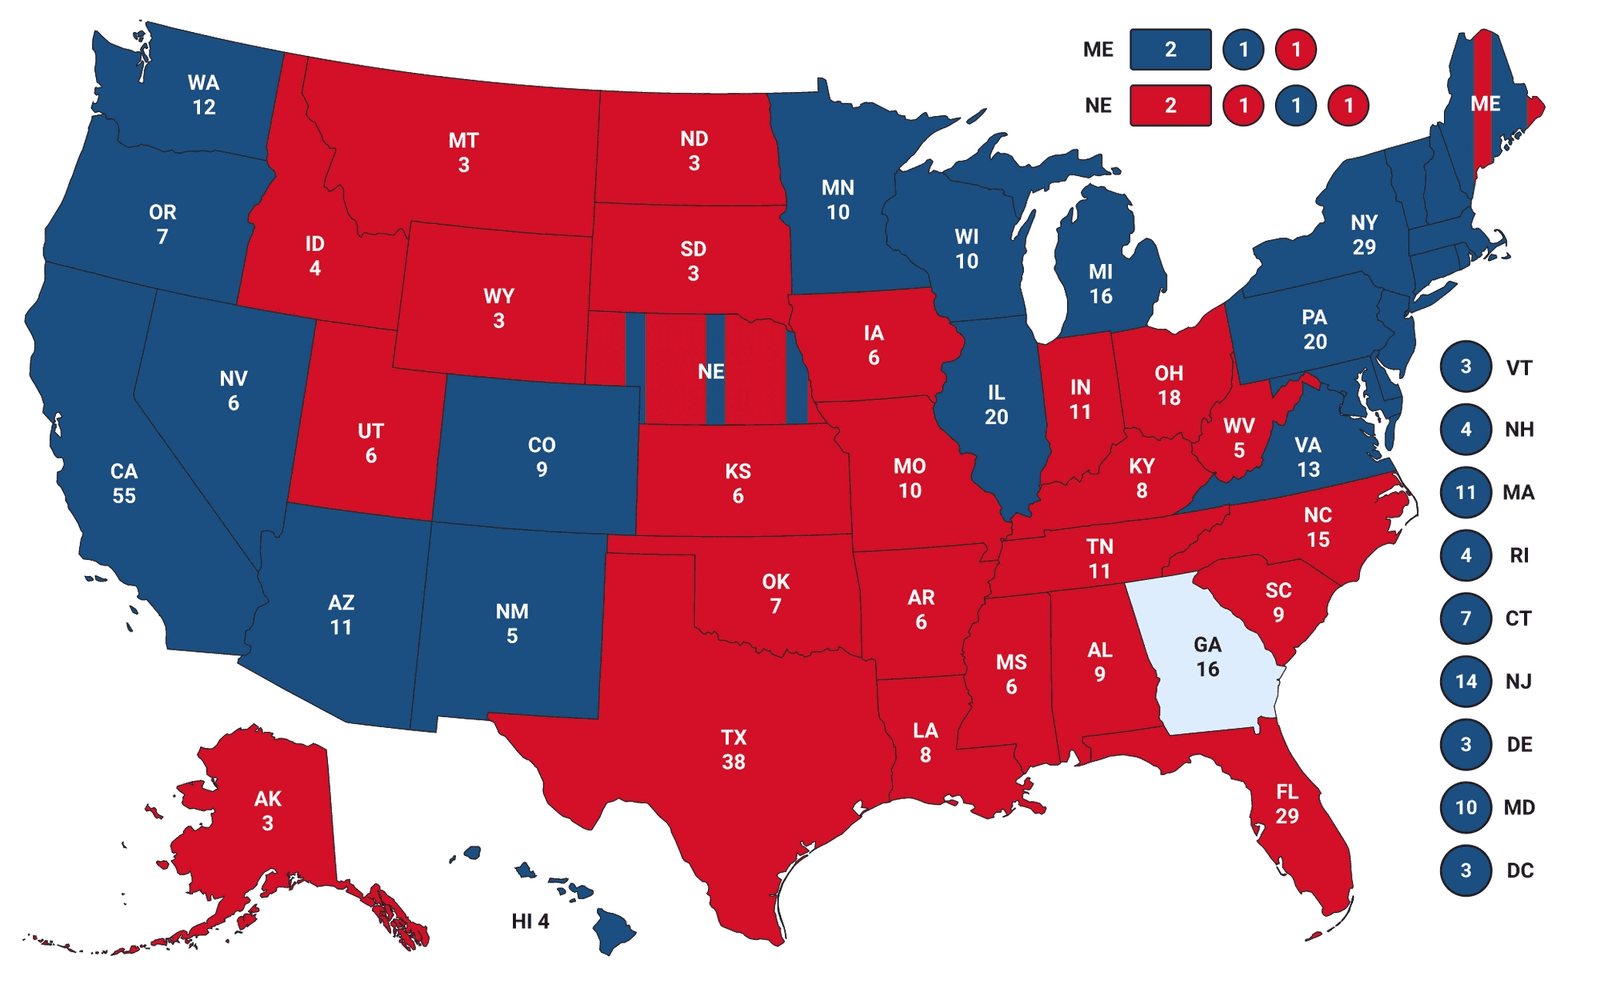 Fox News' election map. Each state is either red or blue, and contains the state code and number of electoral votes available. For states whose surface area is too small for a label, the state and number of electoral votes are written next to the map